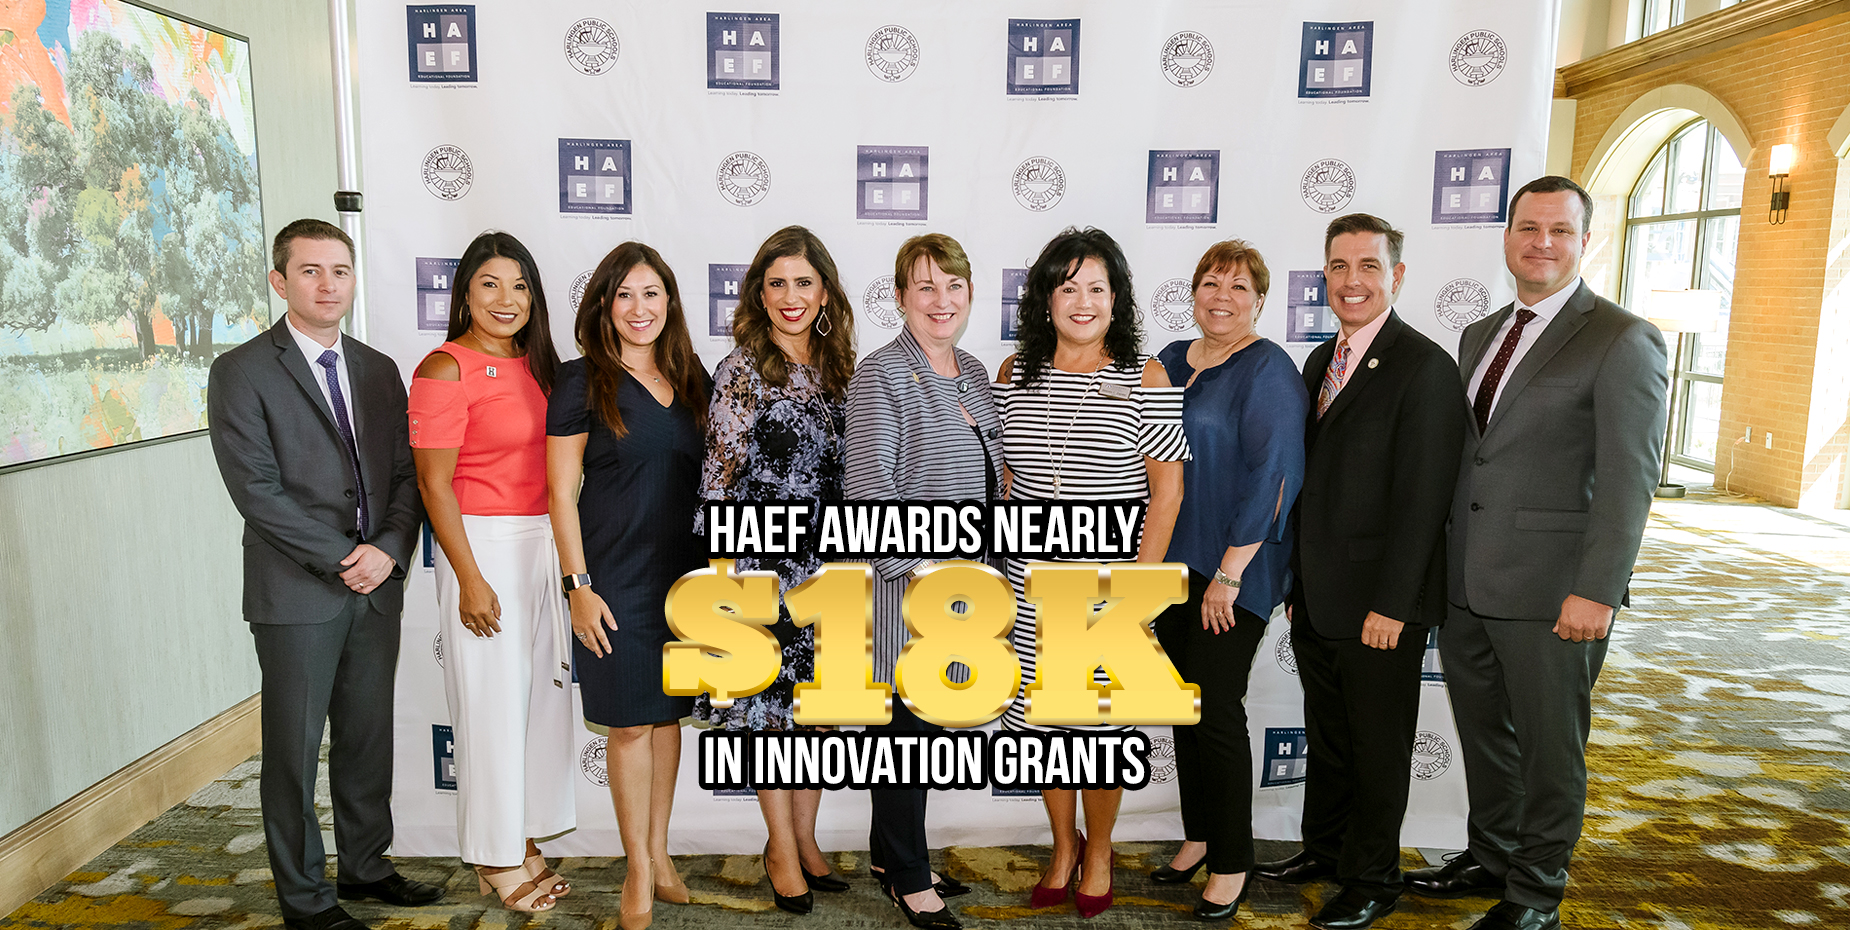 HAEF awards nearly $18K in innovation grants